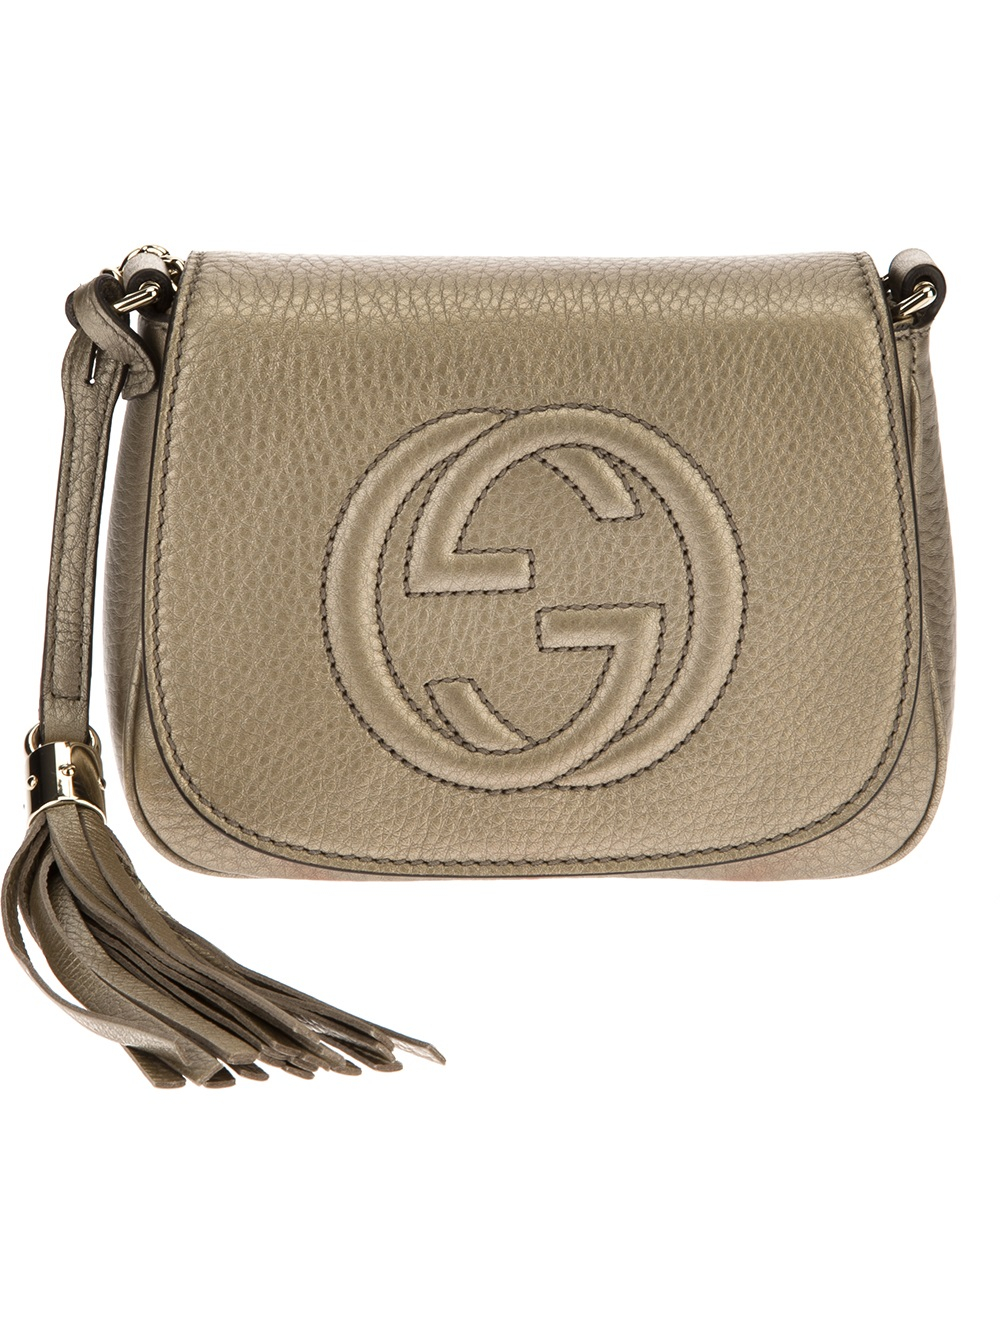 Lyst Gucci Small Shoulder Bag In Metallic